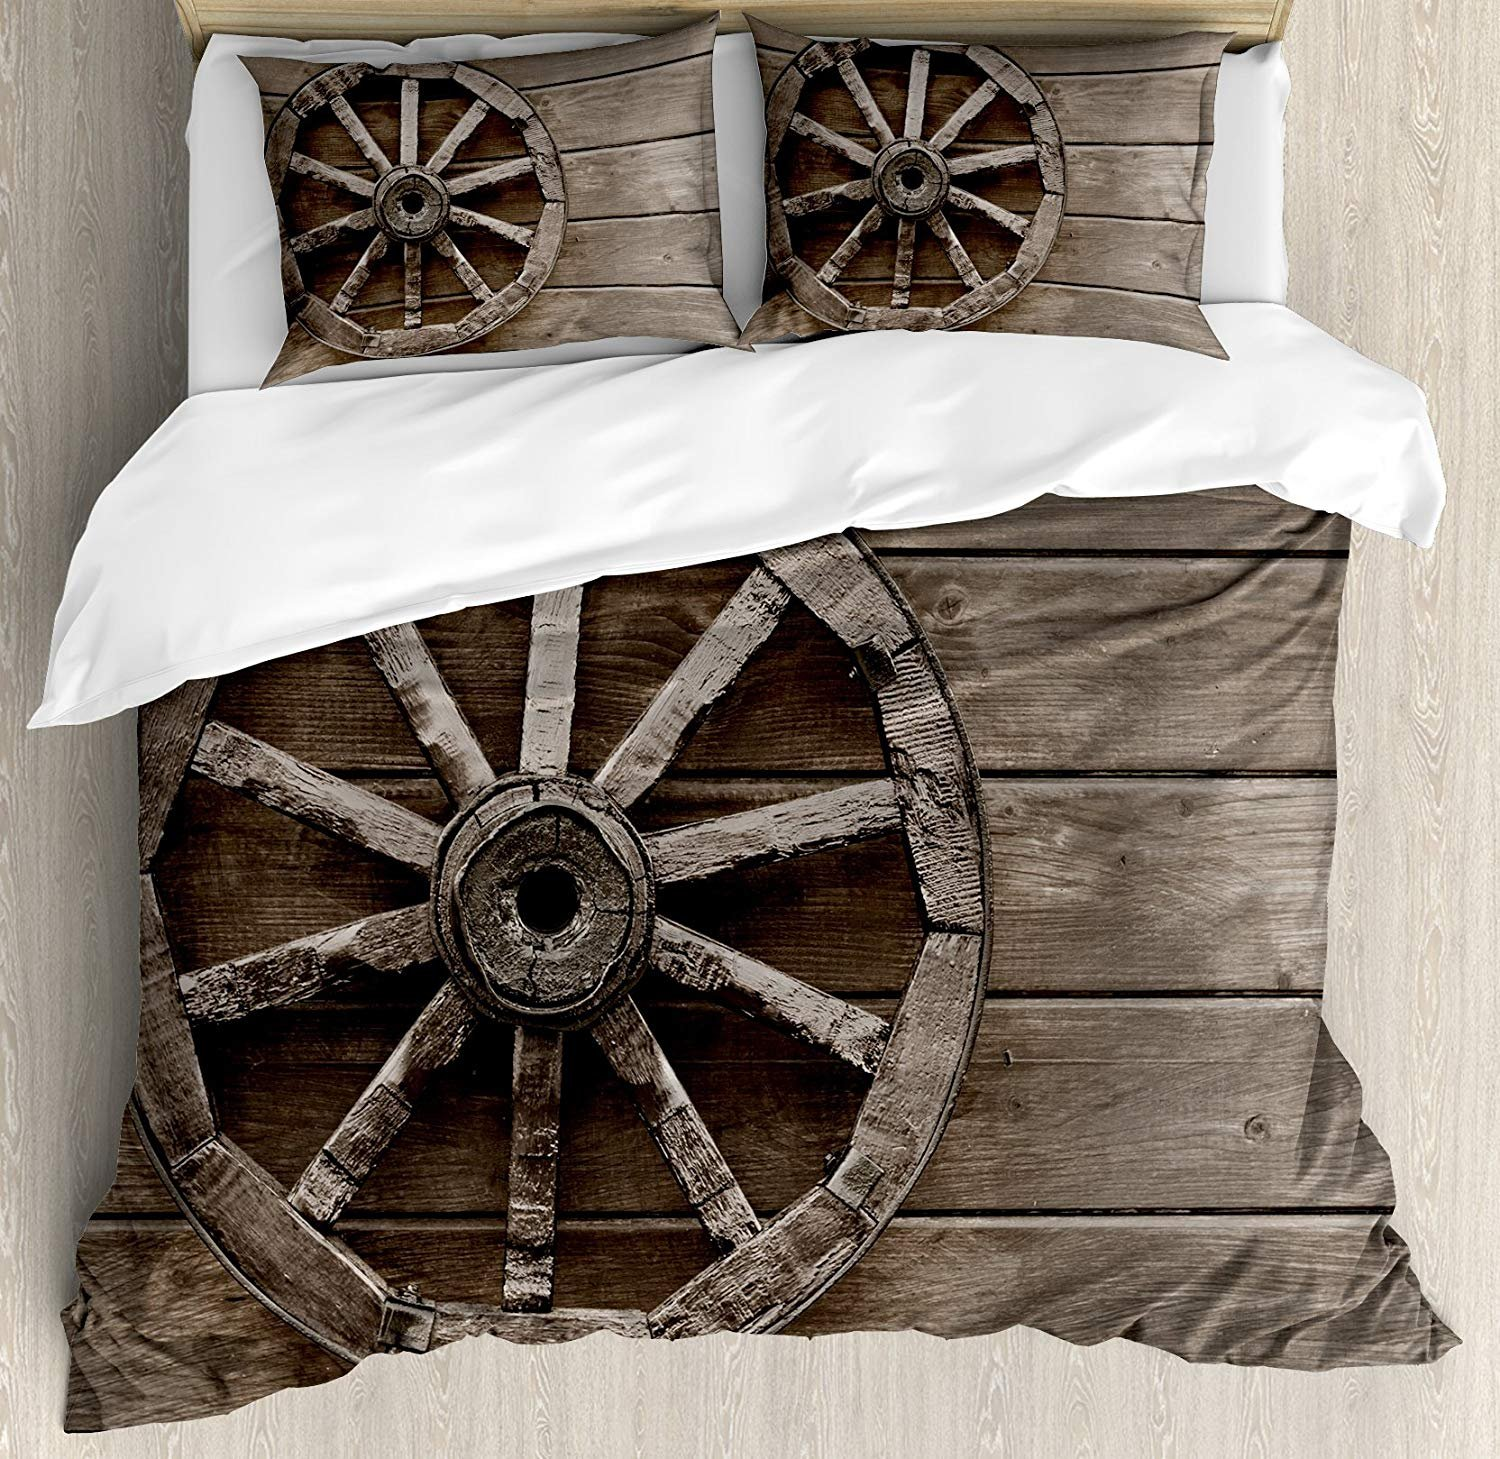 Barn Wood Wagon Wheel Bedding Sets, Antique Aged Carriage Vehicle Wheel on the Wall of Barn Grunge Western, 4 Piece Duvet Cover Set Quilt Bedspread for Childrens/Kids/Teens/Adults, Umber,Twin Size